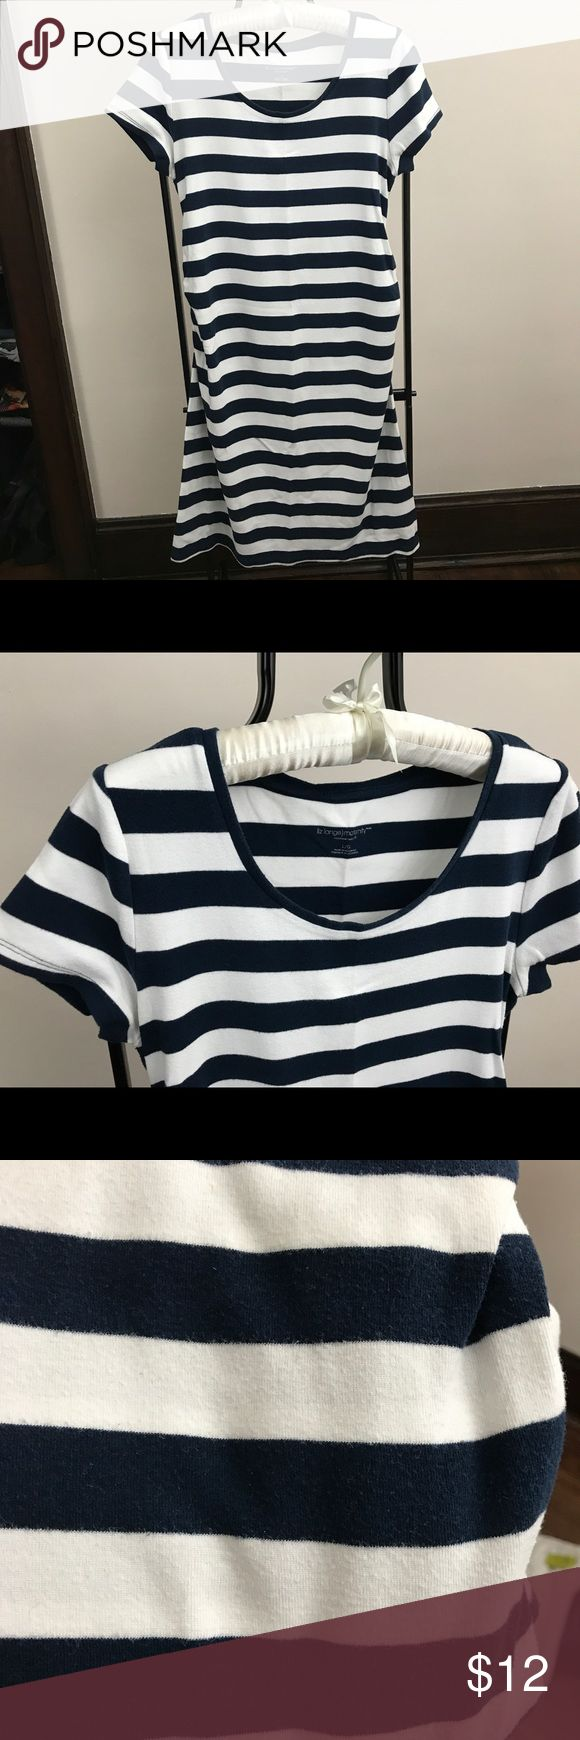 Liz Lange Striped Maternity Dress, Large A great way to showcase your beautiful baby bump!  It's so comfortable, flattering and versatile. Navy and white stripes, machine washable. Shows some wear, so it's priced accordingly. I'm a top-rated seller and fast shipper. Liz Lange for Target Dresses Mini